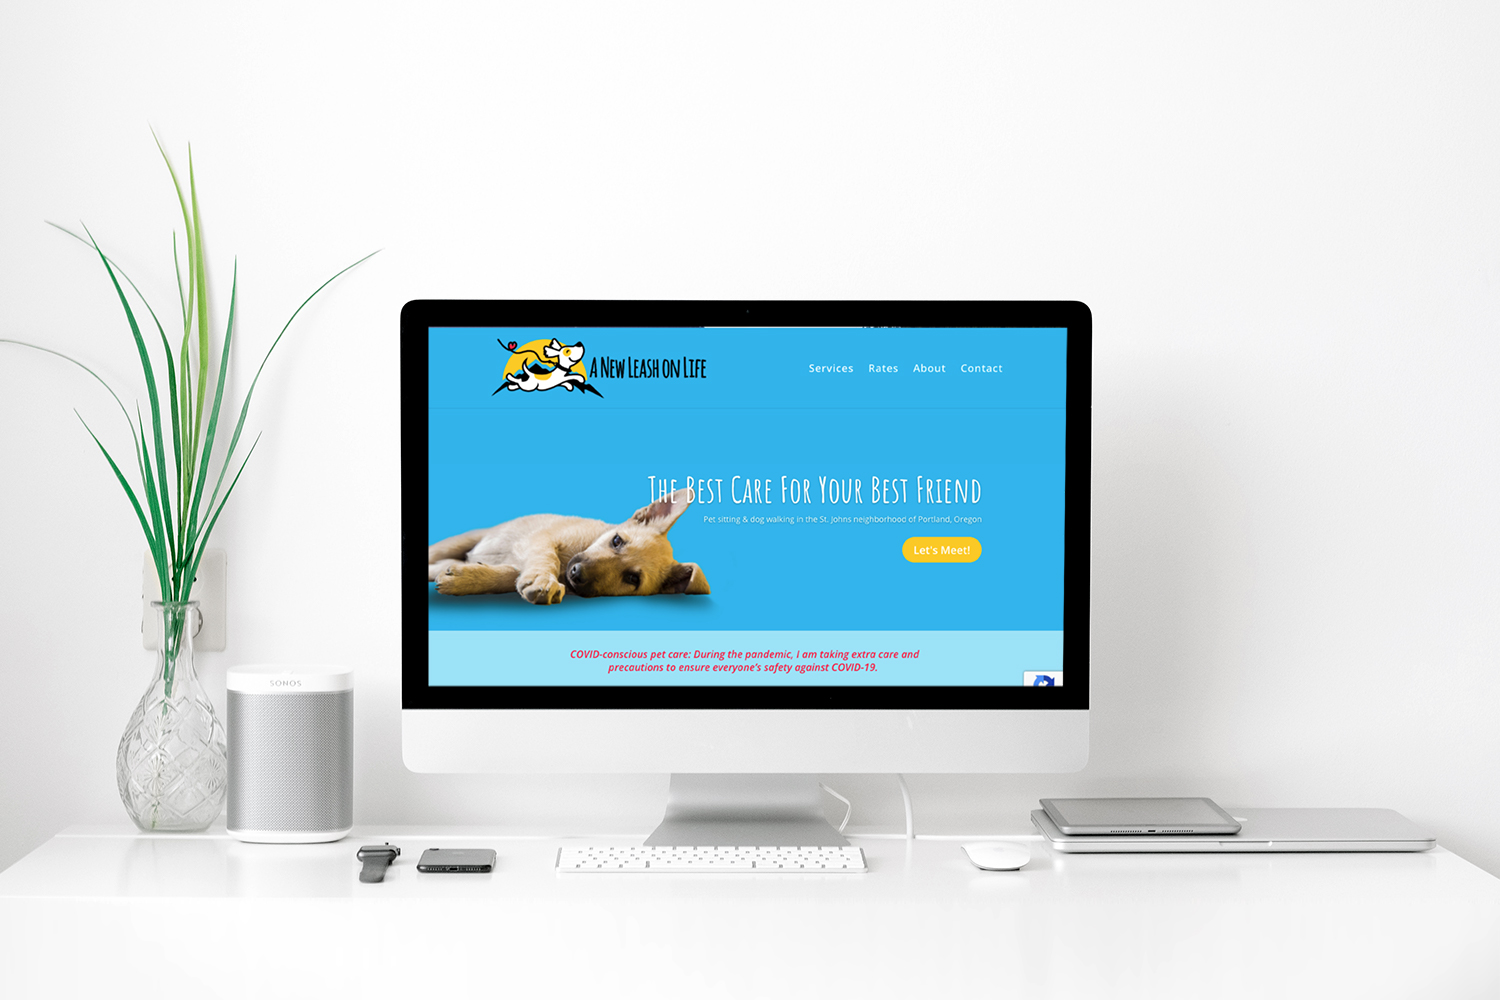 A New Leash On Life PDX website design on desktop